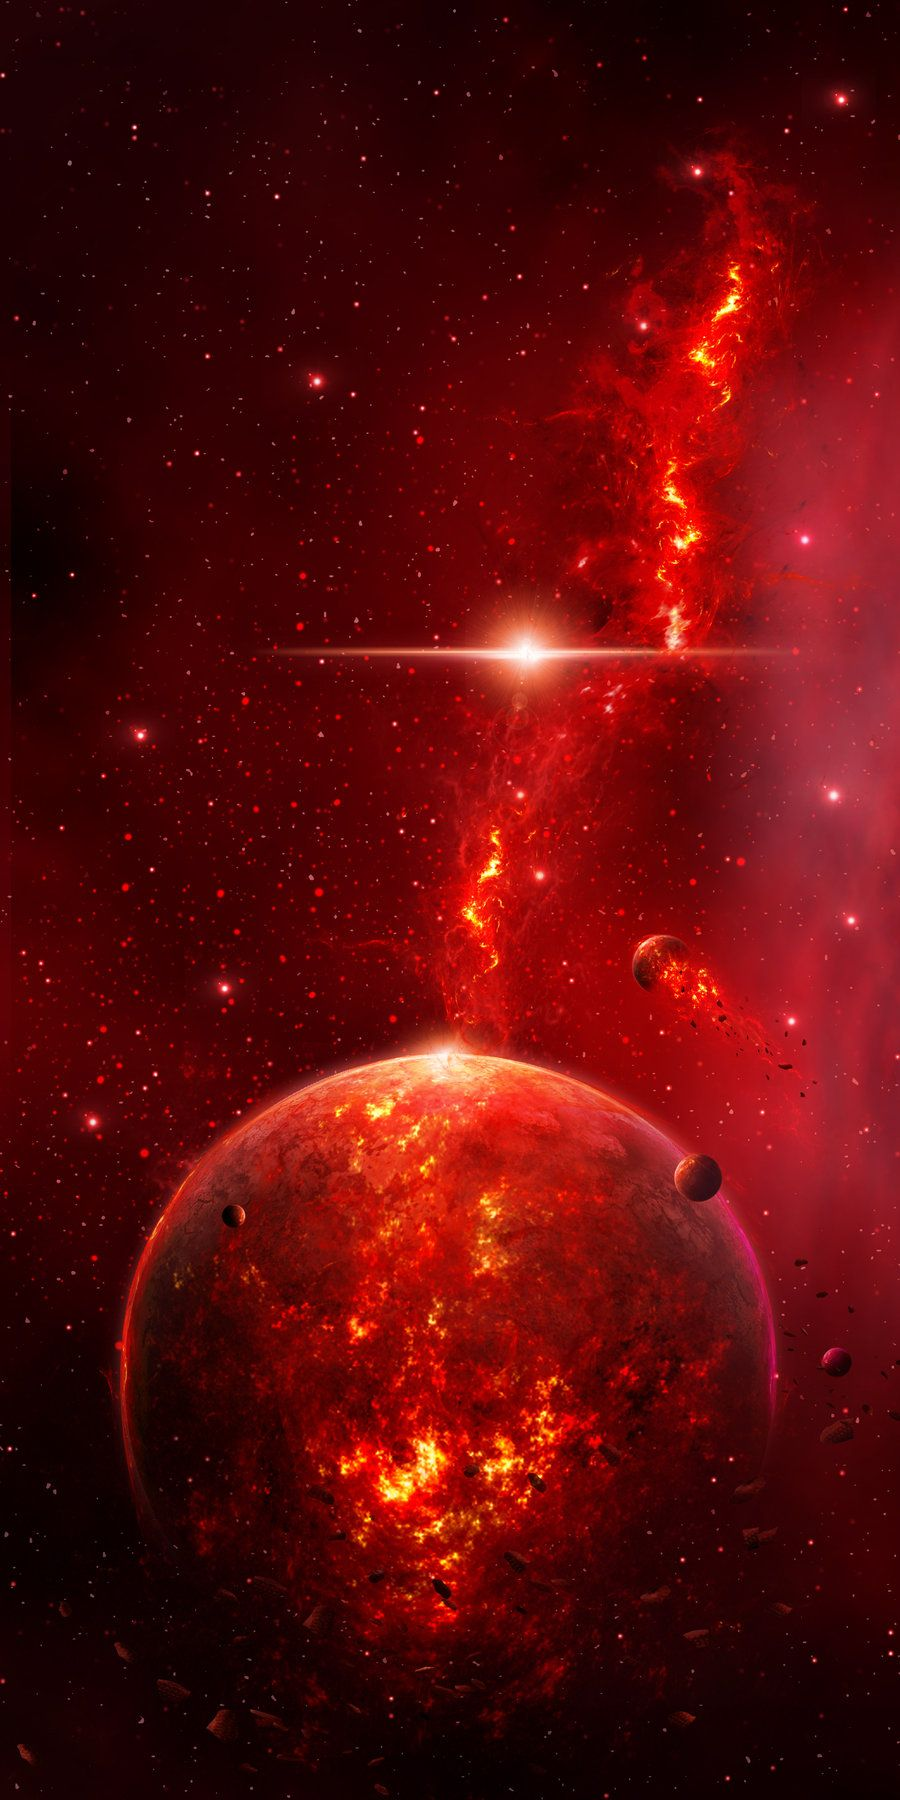 Planet Valkyrie By Charmedy On Deviantart Wallpaper Space Space Art Galaxy Art Galaxy wallpaper red and black